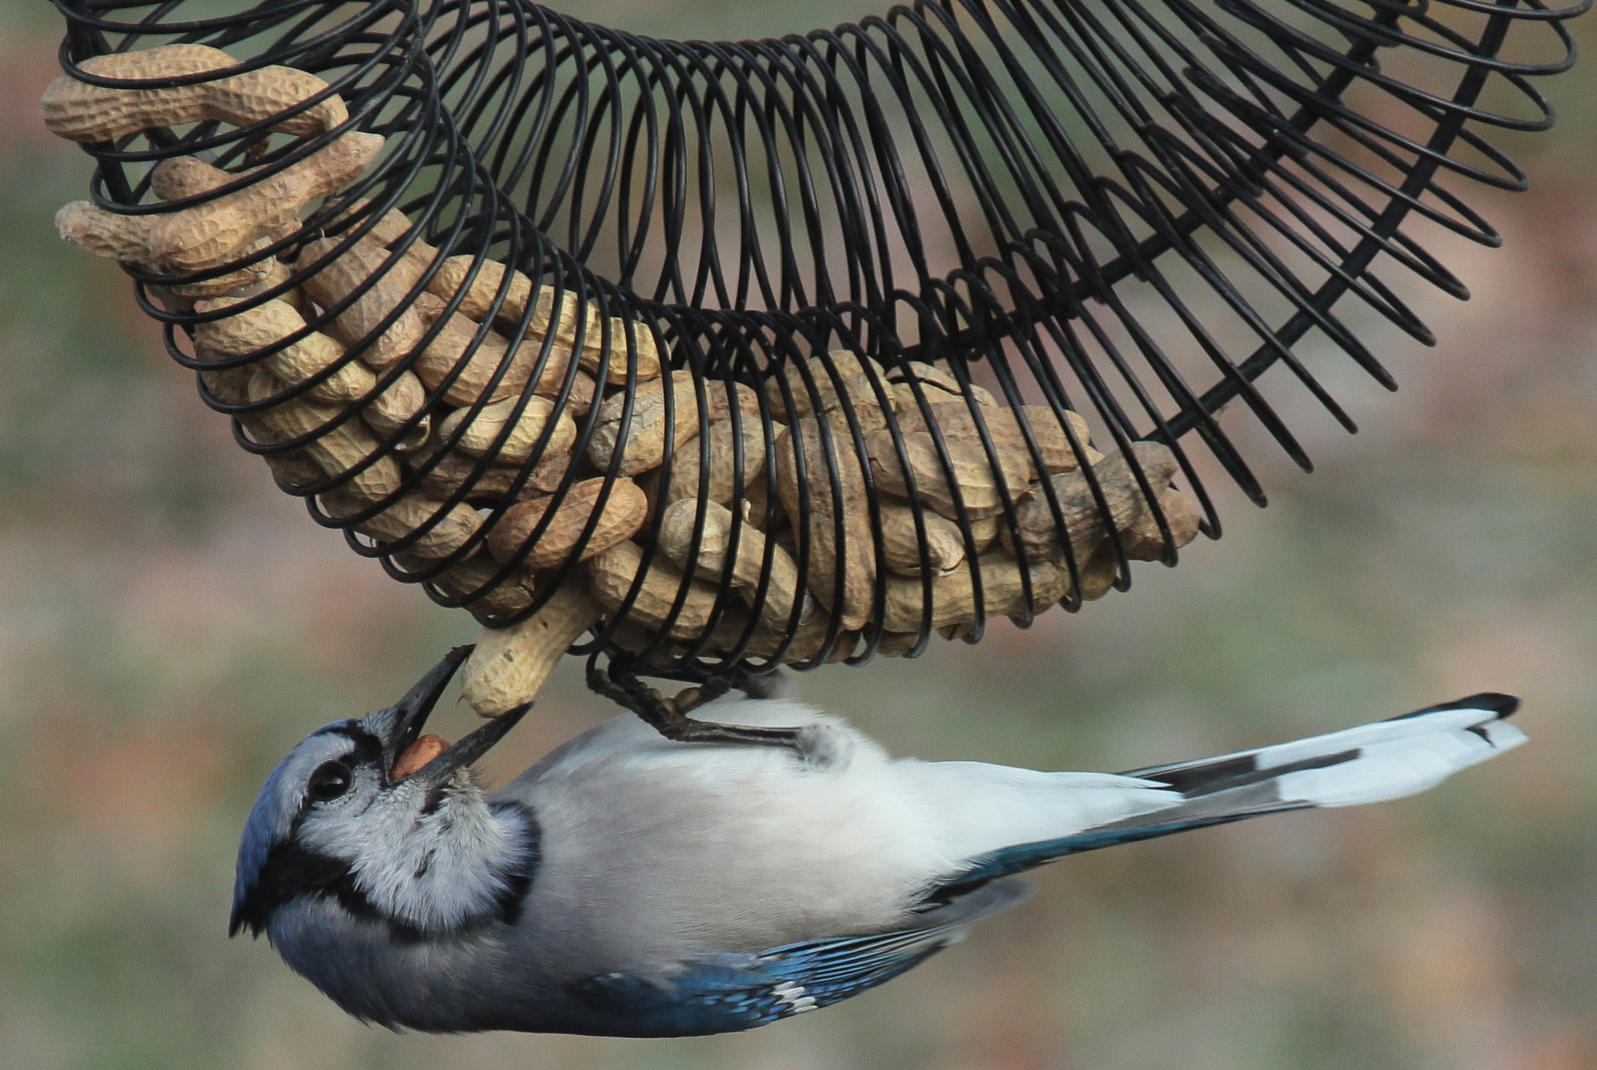 Blue Jay enjoying an in-shell peanut wreath feeder.